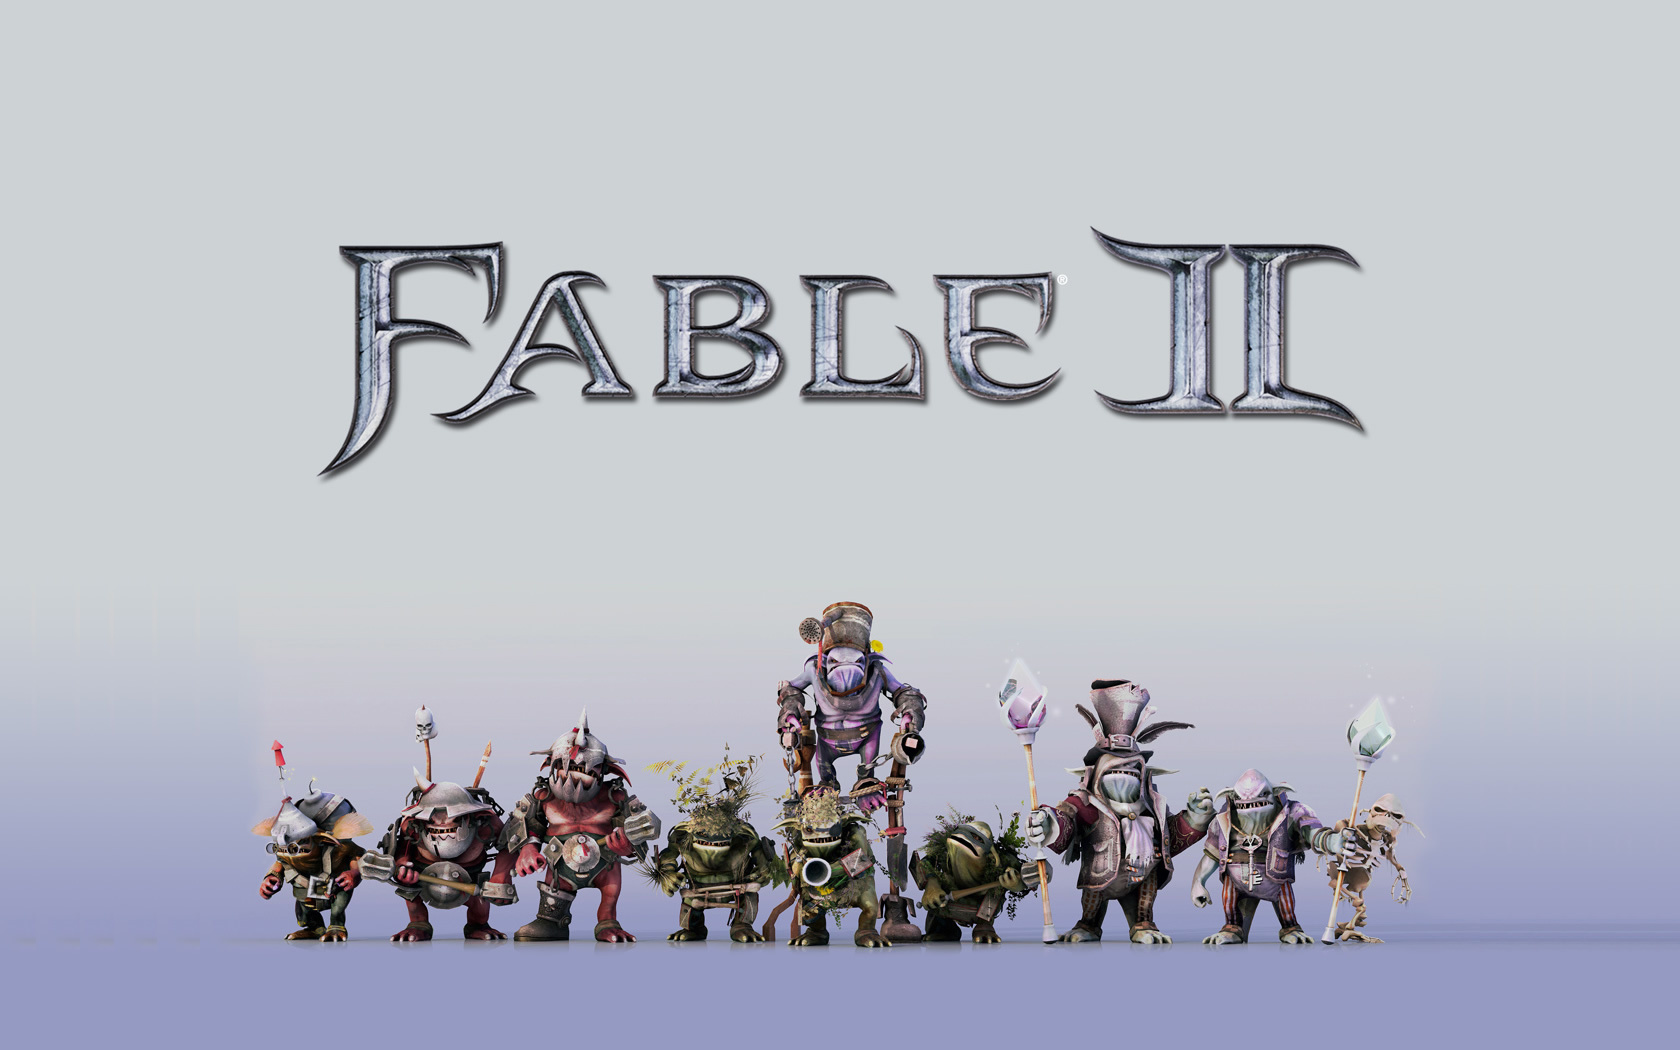 Games fable creatures game HD Wallpaper